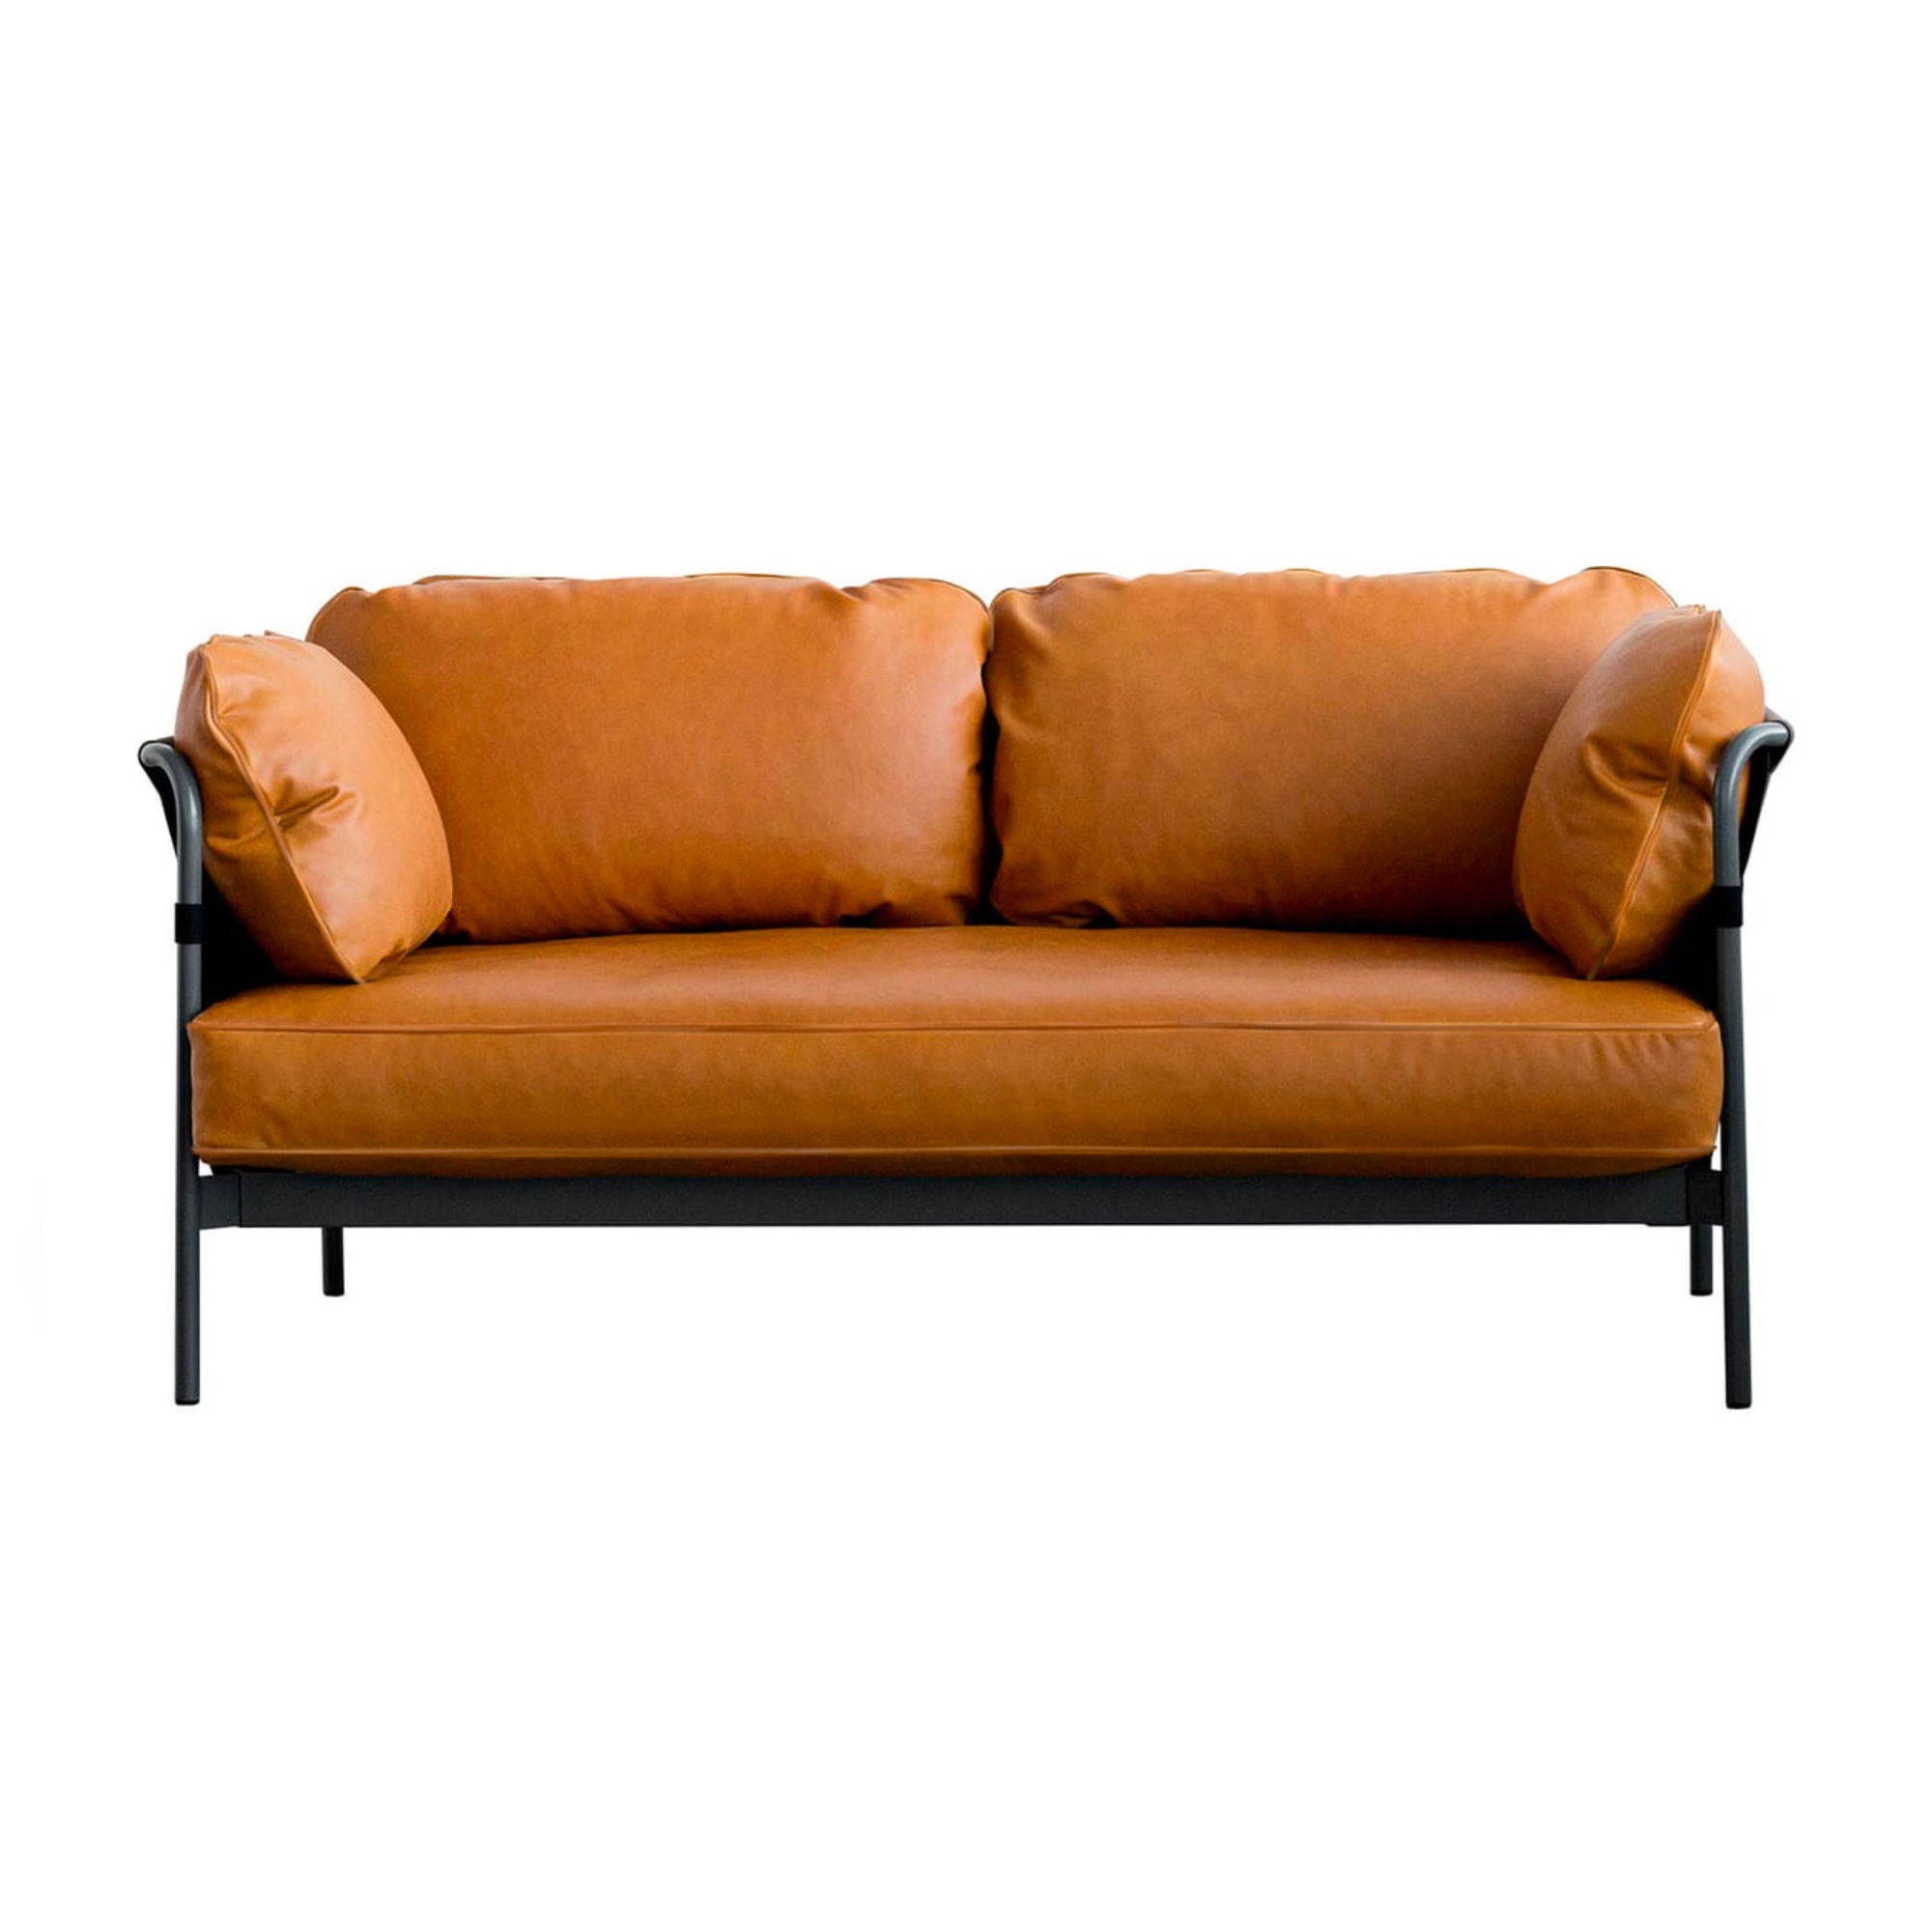 HAY Can 2-Seater Sofa 2.0, black - black - silk0250